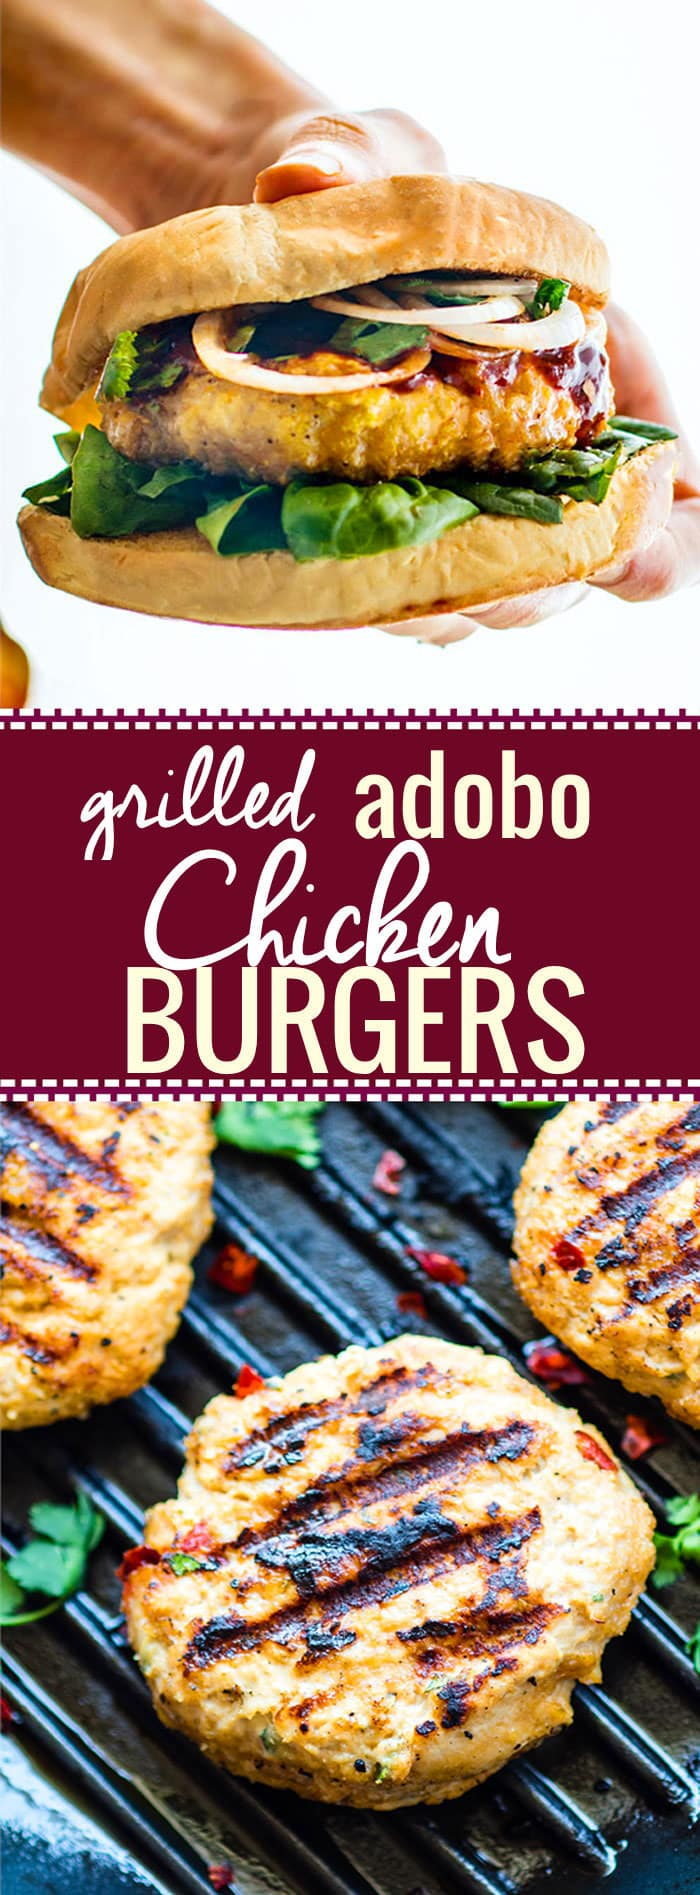 Grilled Adobo Chicken Burgers. Mexican and Filipino style adobo chicken flavors combined then grilled to perfection. Healthy, Gluten free Chicken Burgers! @cottercrunch